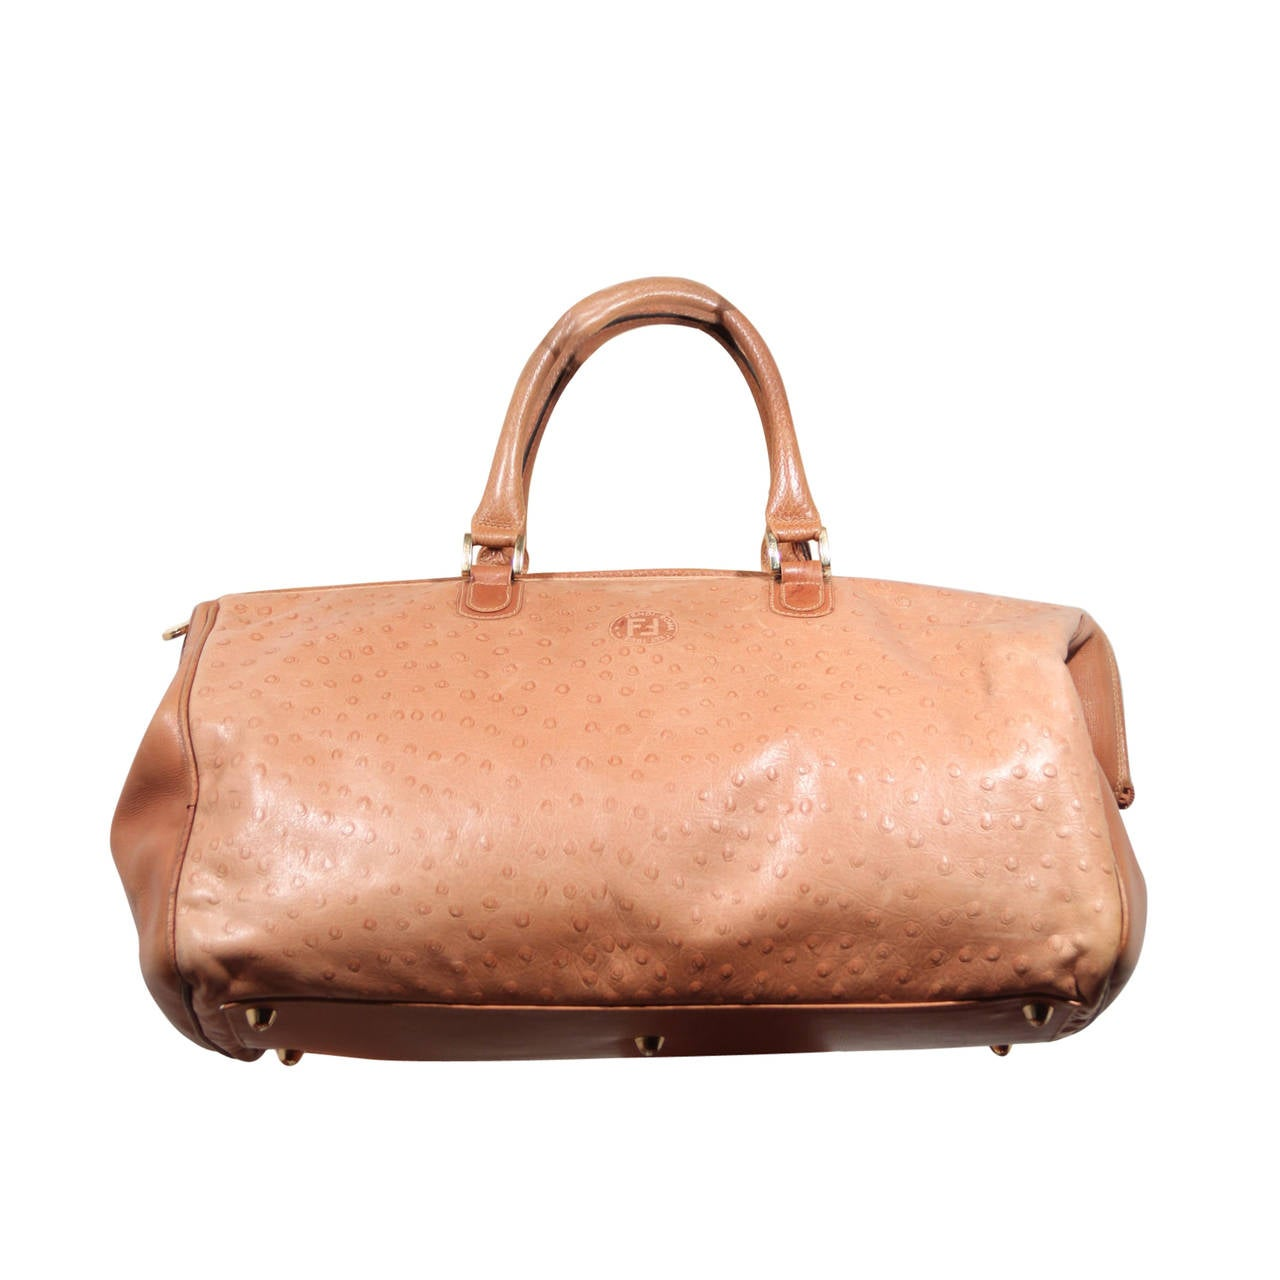 ade4e251801b FENDI Italian Authentc Tan OSTRICH SKIN Leather LARGE DOCTOR BAG Weekender  For Sale. Brand  FENDI - Made in Italy Logos   Tags  FF - FENDI logo patch